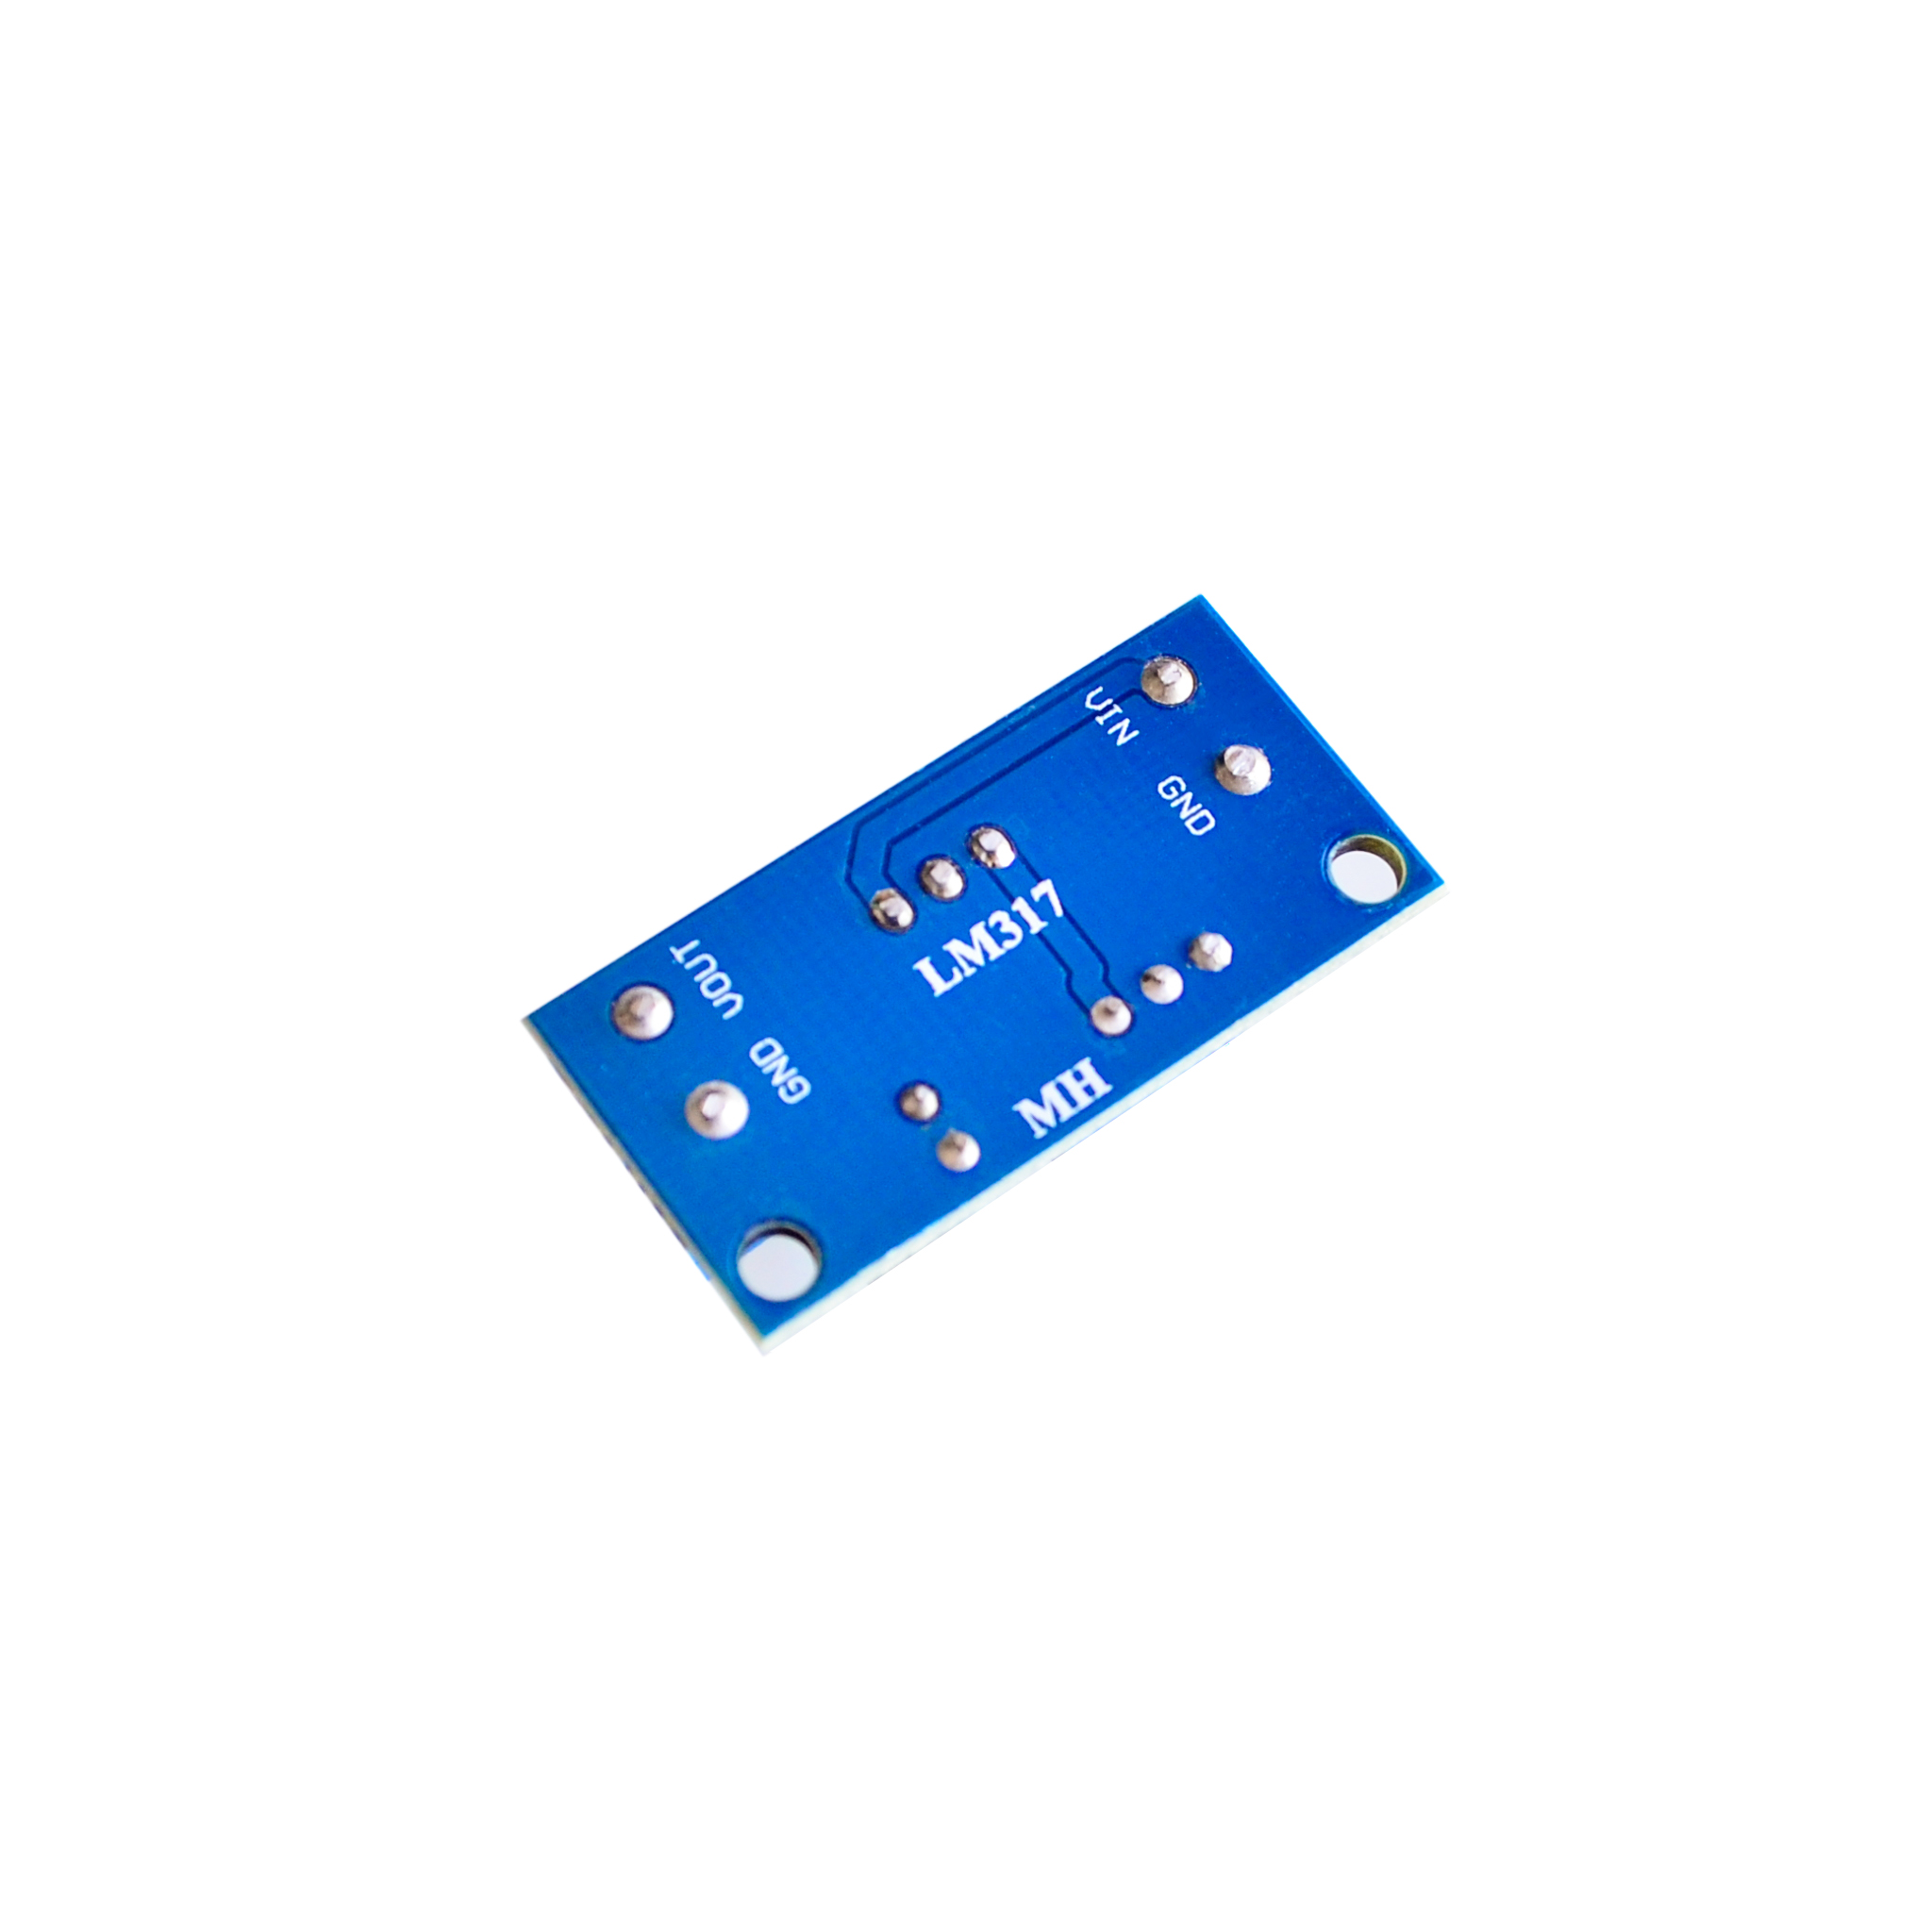 New Lm317 Dc Step Down Converter Circuit Board Power Supply Understanding This Led Driver Electrical Engineering Module 1pcs In Integrated Circuits From Electronic Components Supplies On